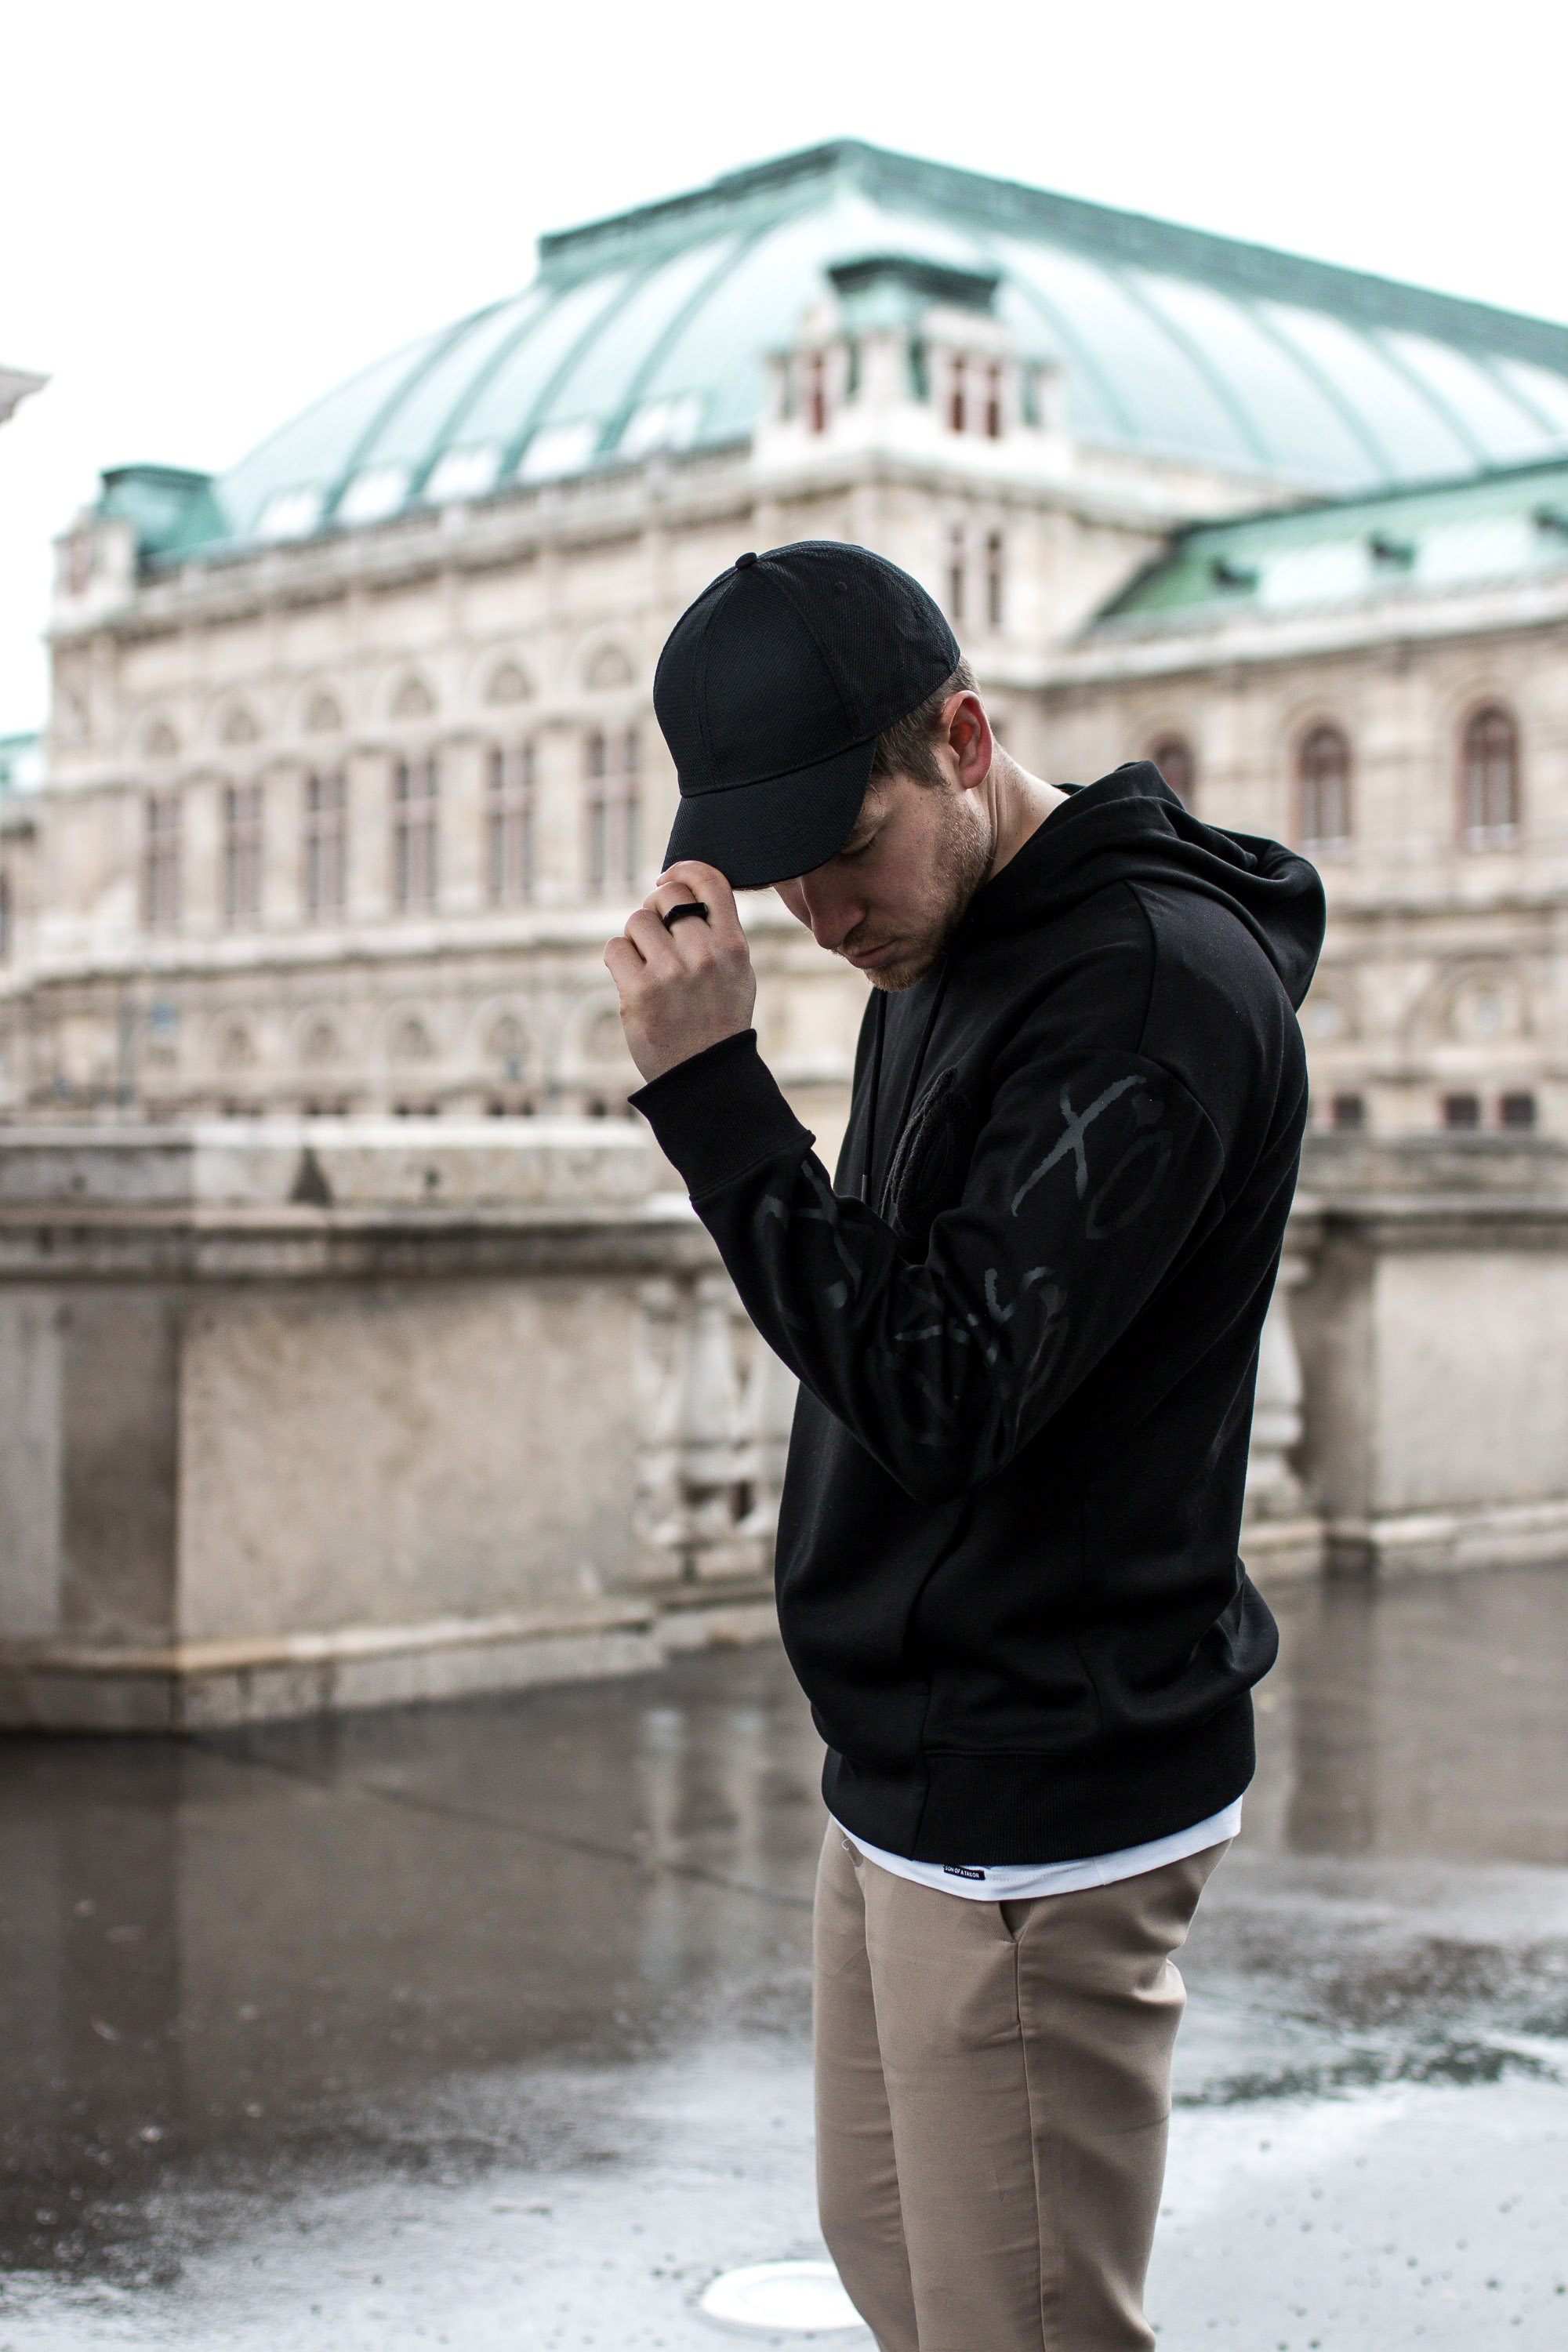 H&M Spring Icons by The Weeknd - Meanwhile in Awesometown Austrian Mens Fashion Blogger - Wiener Blogger 8